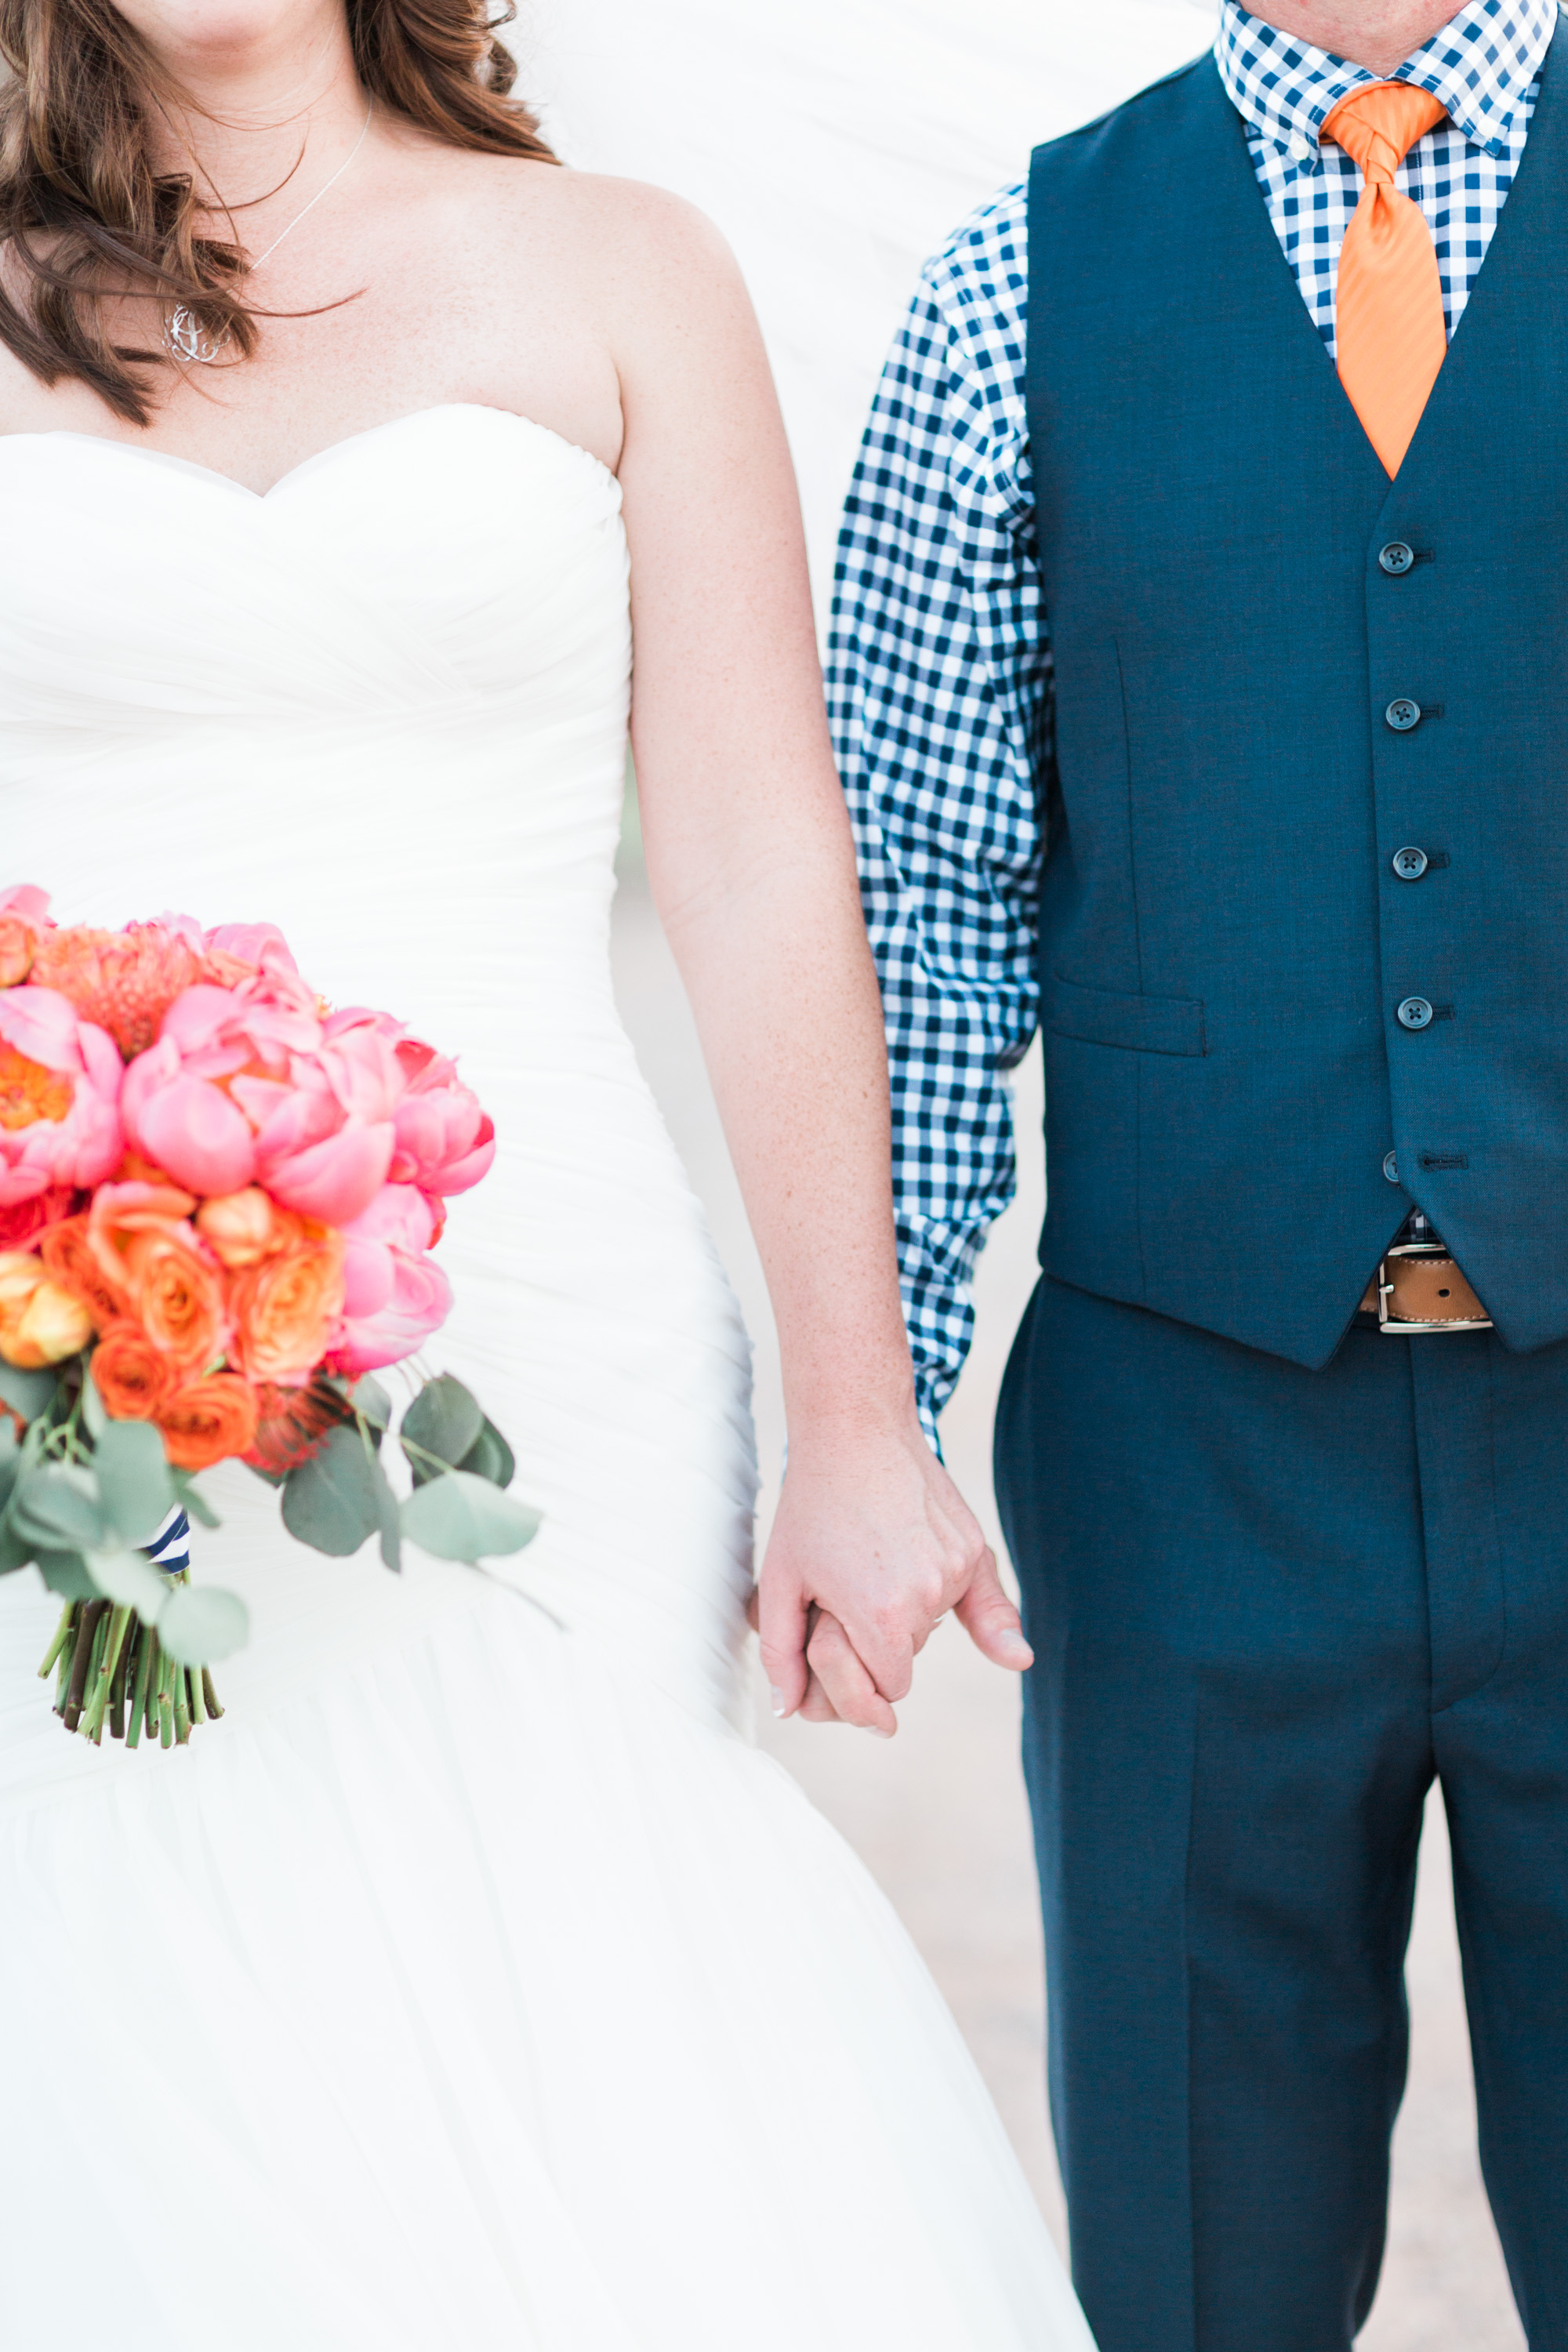 Bride and groom holding hands, standing side by side.